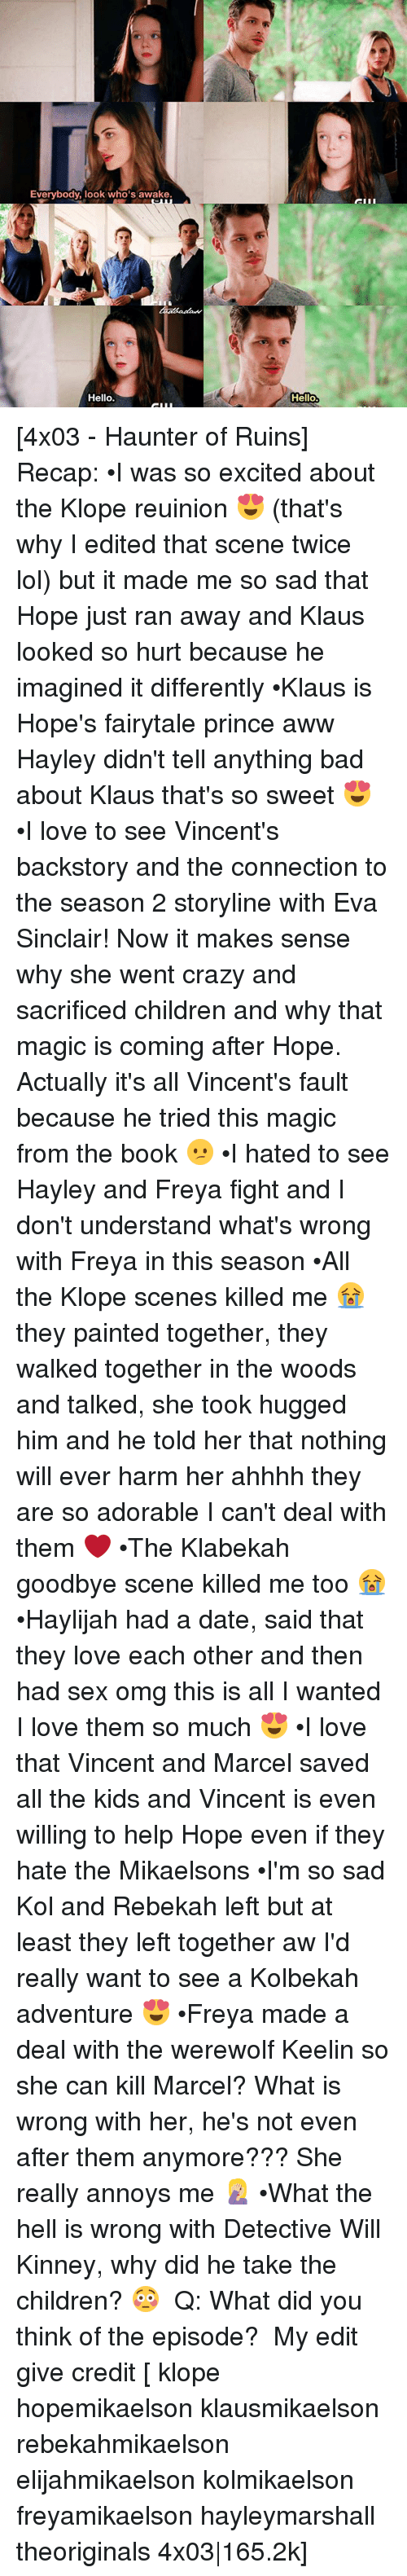 freya: Everybody, look who's awake.  Hello.  Hello [4x03 - Haunter of Ruins] Recap: •I was so excited about the Klope reuinion 😍 (that's why I edited that scene twice lol) but it made me so sad that Hope just ran away and Klaus looked so hurt because he imagined it differently •Klaus is Hope's fairytale prince aww Hayley didn't tell anything bad about Klaus that's so sweet 😍 •I love to see Vincent's backstory and the connection to the season 2 storyline with Eva Sinclair! Now it makes sense why she went crazy and sacrificed children and why that magic is coming after Hope. Actually it's all Vincent's fault because he tried this magic from the book 😕 •I hated to see Hayley and Freya fight and I don't understand what's wrong with Freya in this season •All the Klope scenes killed me 😭 they painted together, they walked together in the woods and talked, she took hugged him and he told her that nothing will ever harm her ahhhh they are so adorable I can't deal with them ❤ •The Klabekah goodbye scene killed me too 😭 •Haylijah had a date, said that they love each other and then had sex omg this is all I wanted I love them so much 😍 •I love that Vincent and Marcel saved all the kids and Vincent is even willing to help Hope even if they hate the Mikaelsons •I'm so sad Kol and Rebekah left but at least they left together aw I'd really want to see a Kolbekah adventure 😍 •Freya made a deal with the werewolf Keelin so she can kill Marcel? What is wrong with her, he's not even after them anymore??? She really annoys me 🤦🏼♀️ •What the hell is wrong with Detective Will Kinney, why did he take the children? 😳 ⠀ Q: What did you think of the episode? ⠀ My edit give credit [ klope hopemikaelson klausmikaelson rebekahmikaelson elijahmikaelson kolmikaelson freyamikaelson hayleymarshall theoriginals 4x03|165.2k]